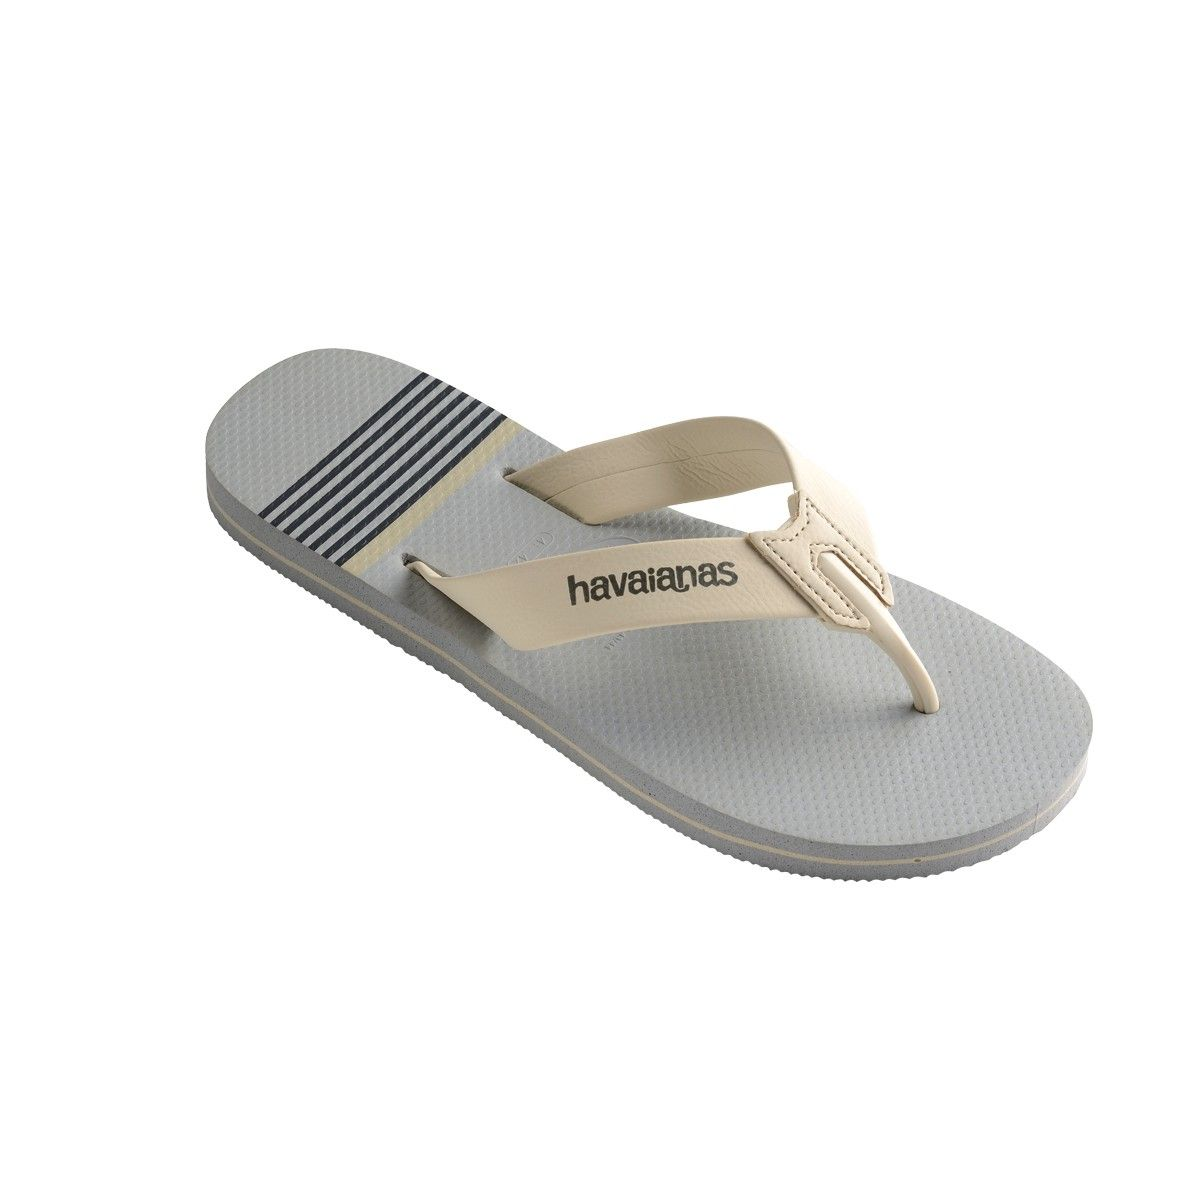 ca35b5aa1 URBAN CRAFT FLIP FLOPS ICE GREY by Havaianas in 2018